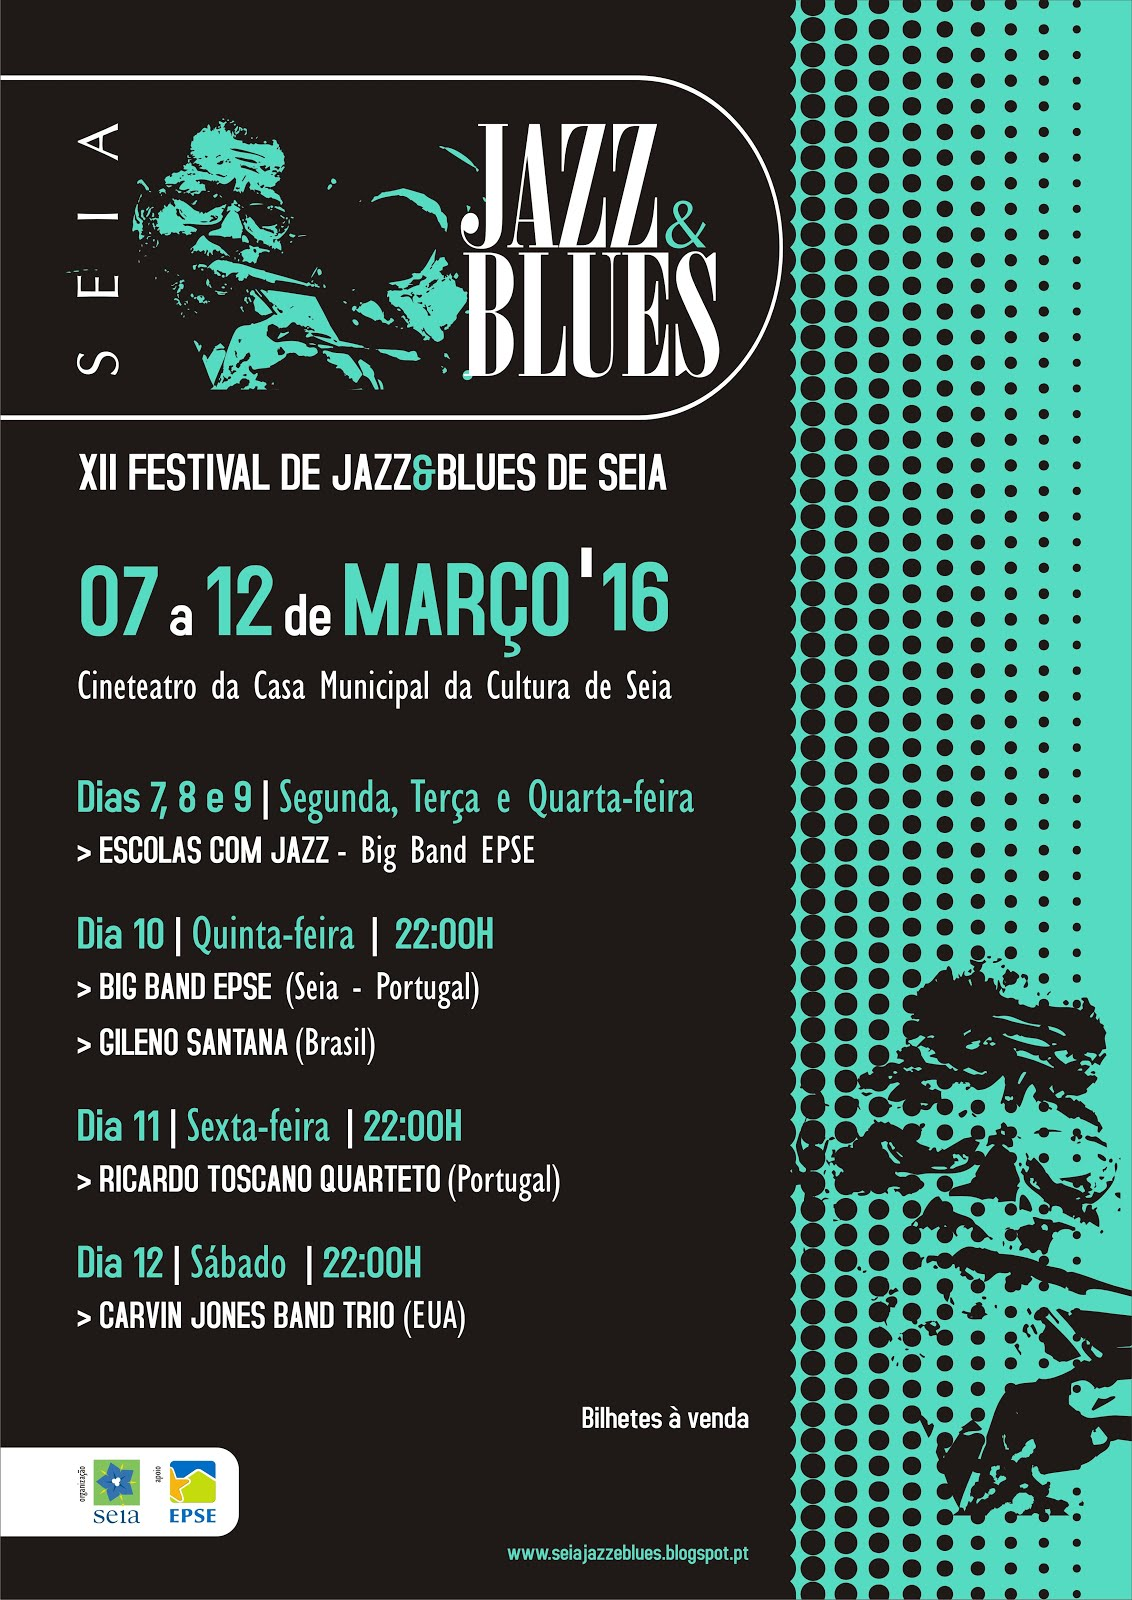 XII SEIA JAZZ & BLUES